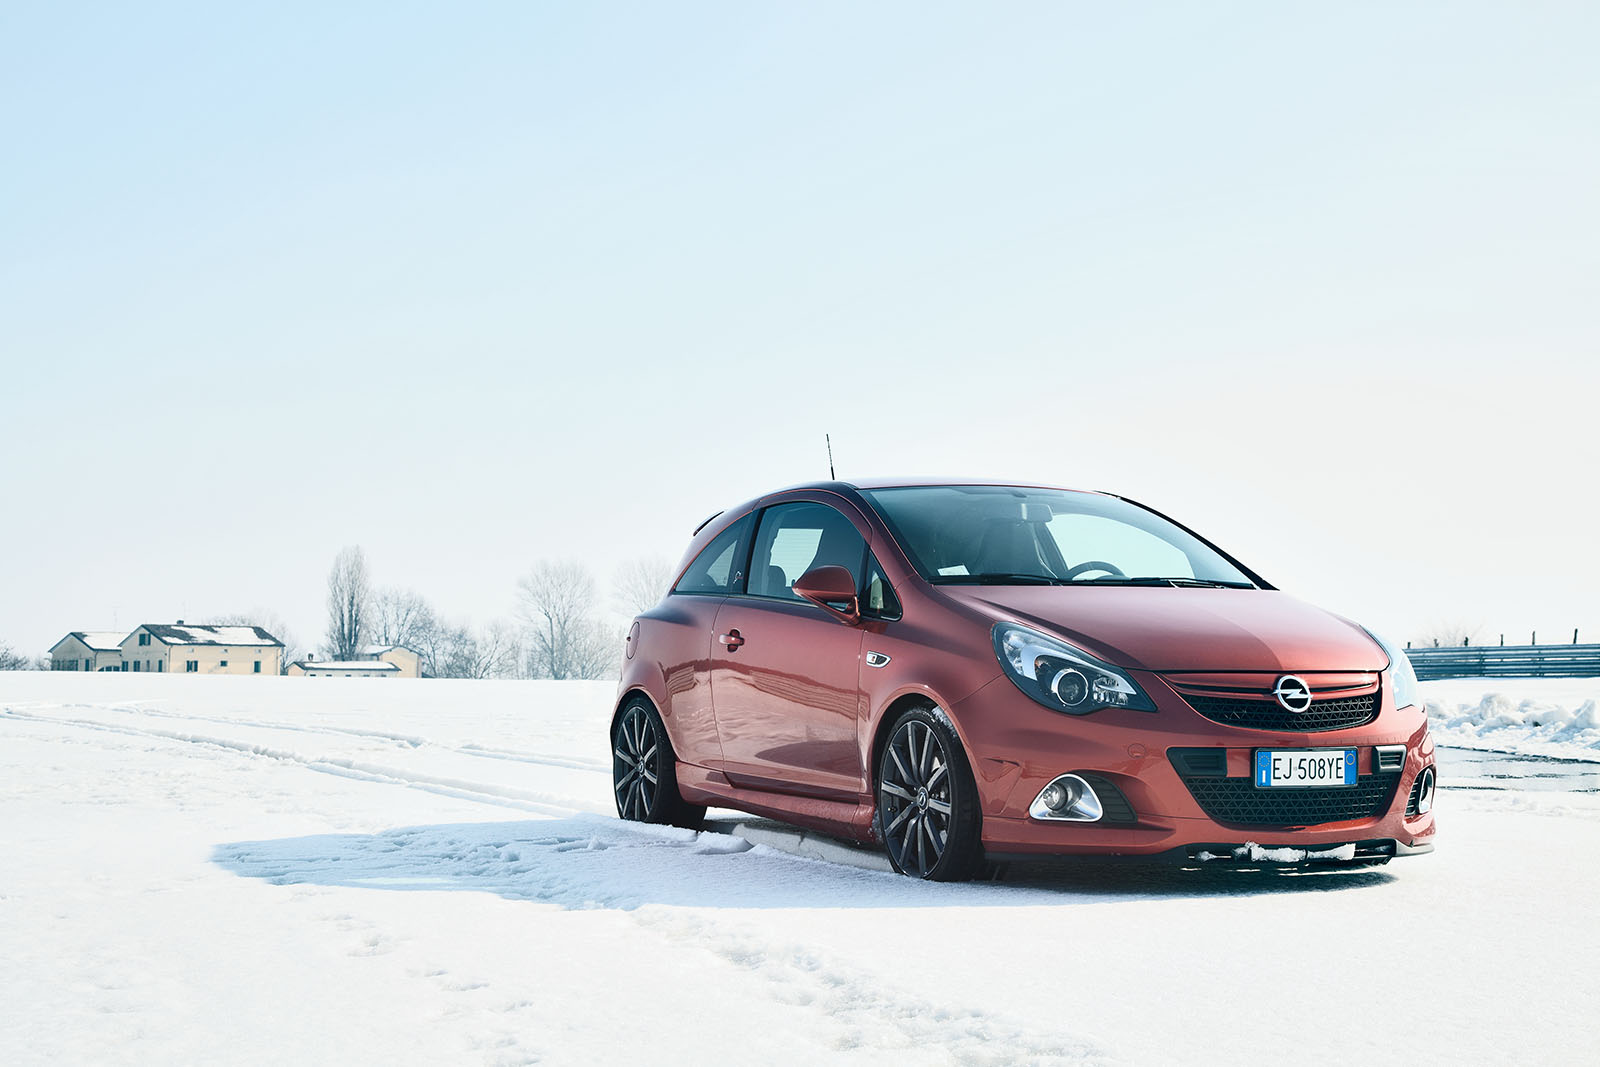 OPEL_corsa_nurburing_opc_neve_static_snow